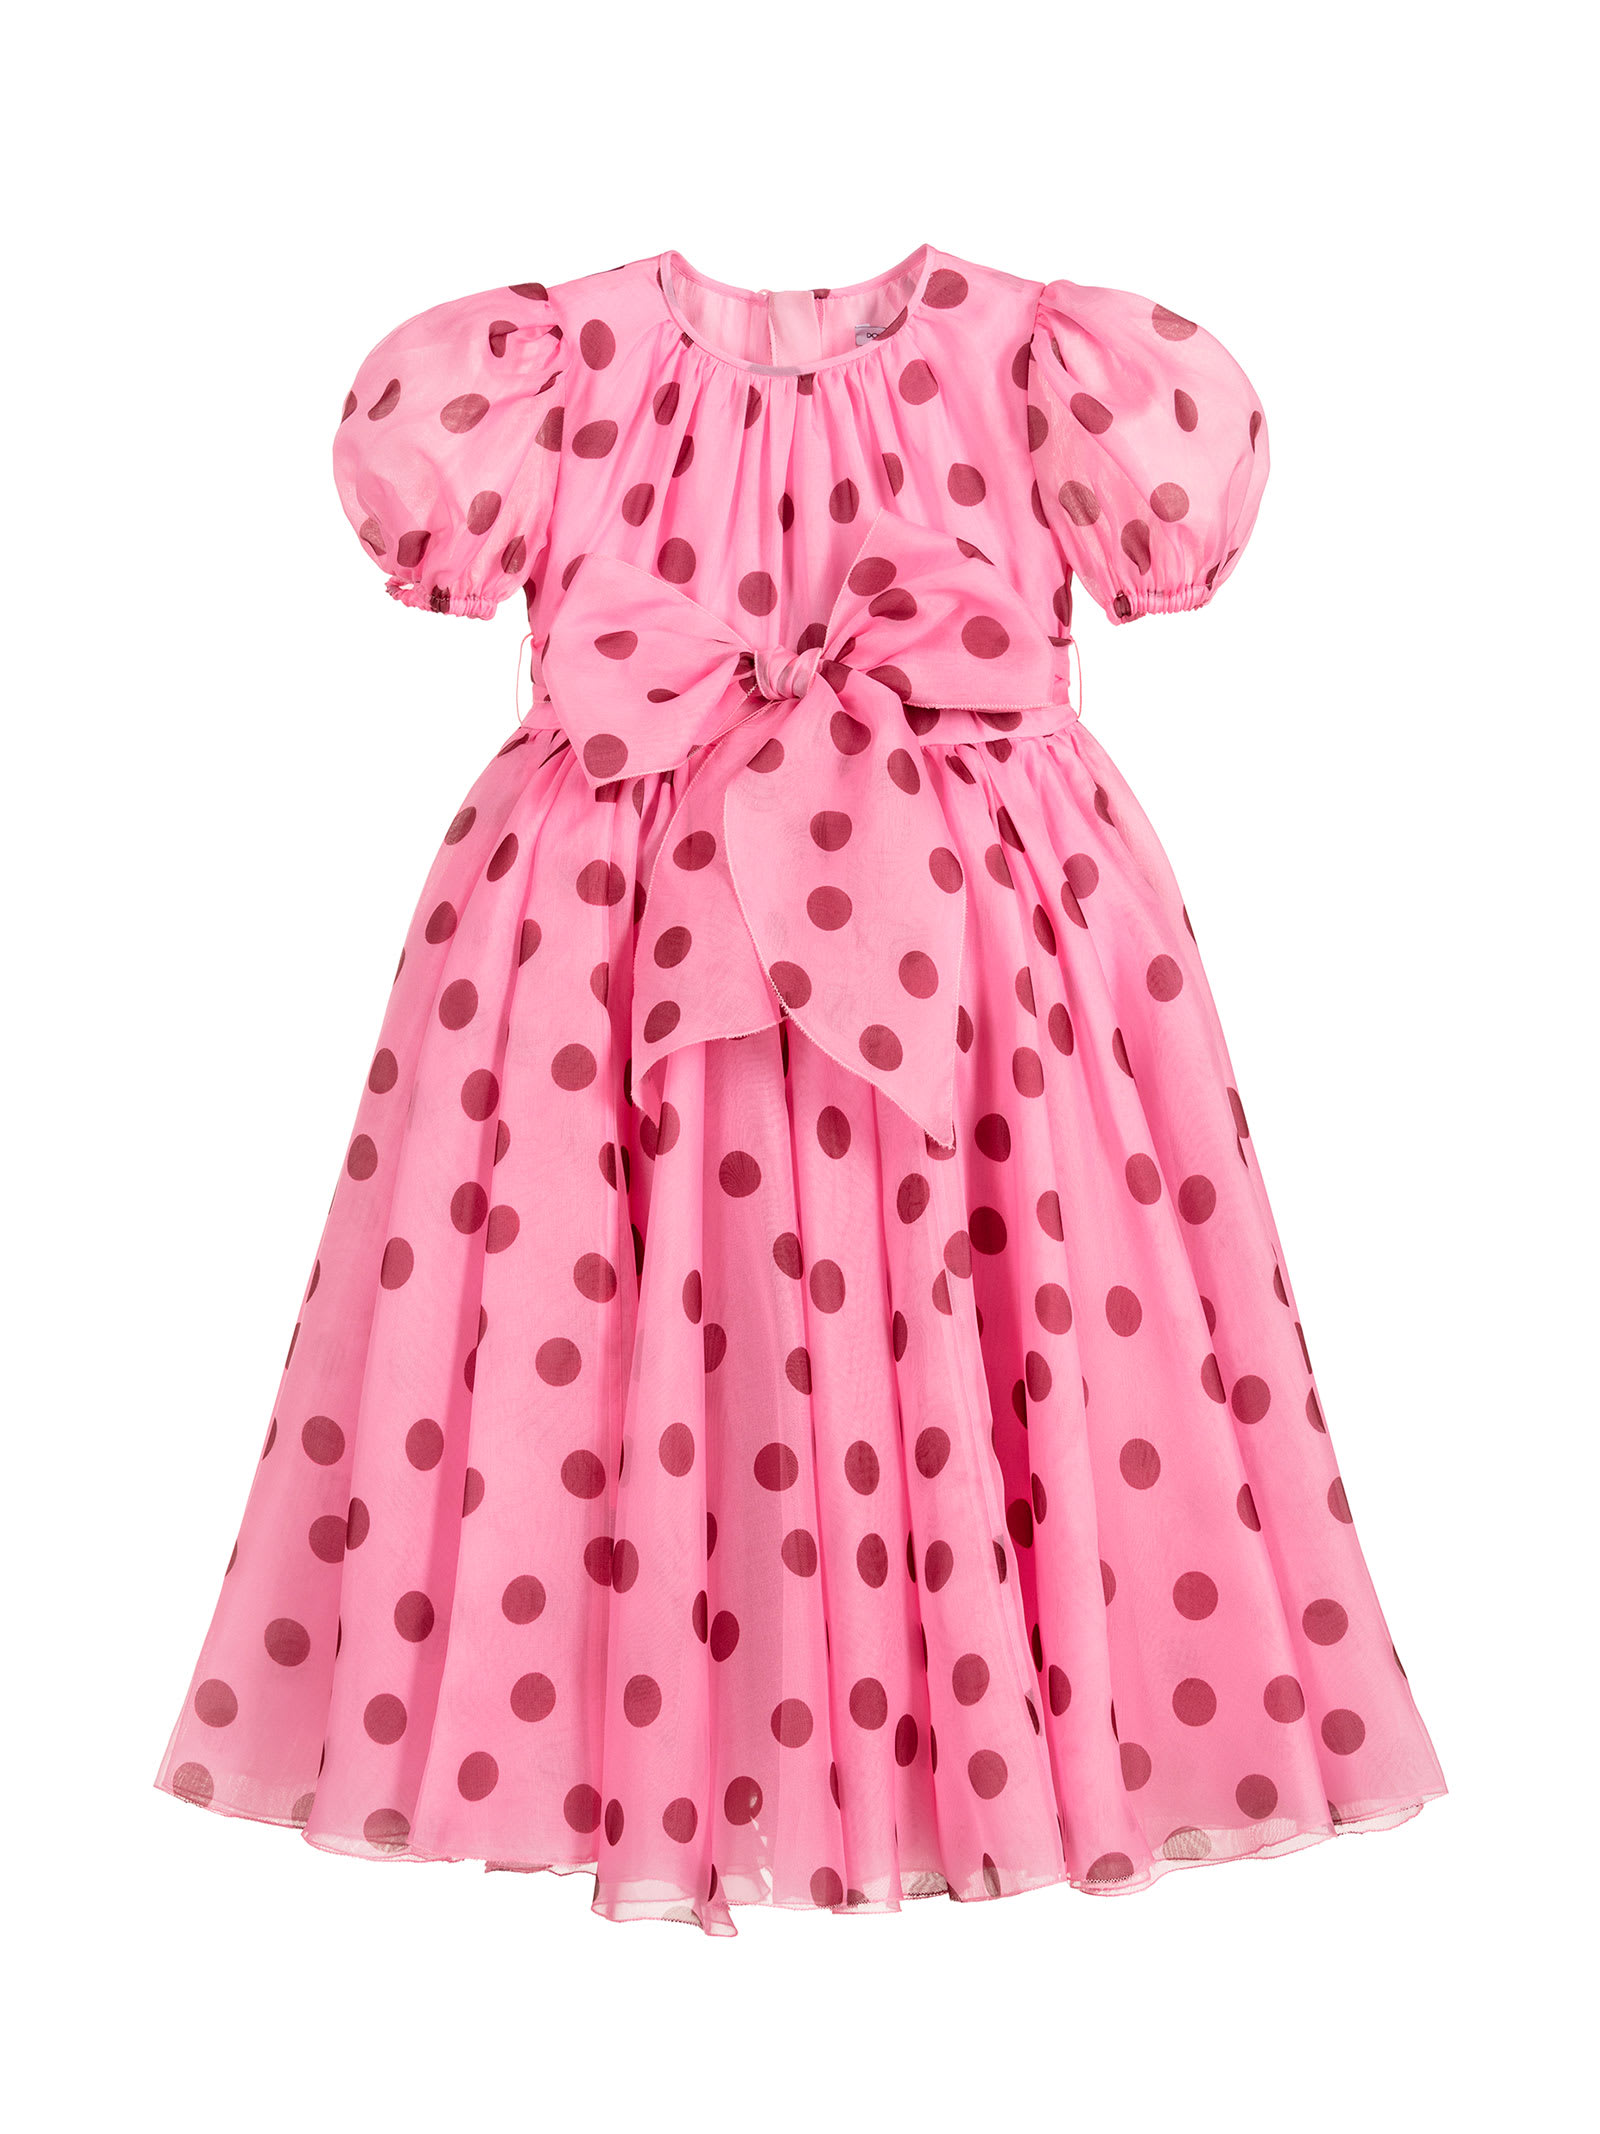 Buy Dolce & Gabbana Pink Dress With Red Pois Dolce & gabbana Kids online, shop Dolce & Gabbana with free shipping